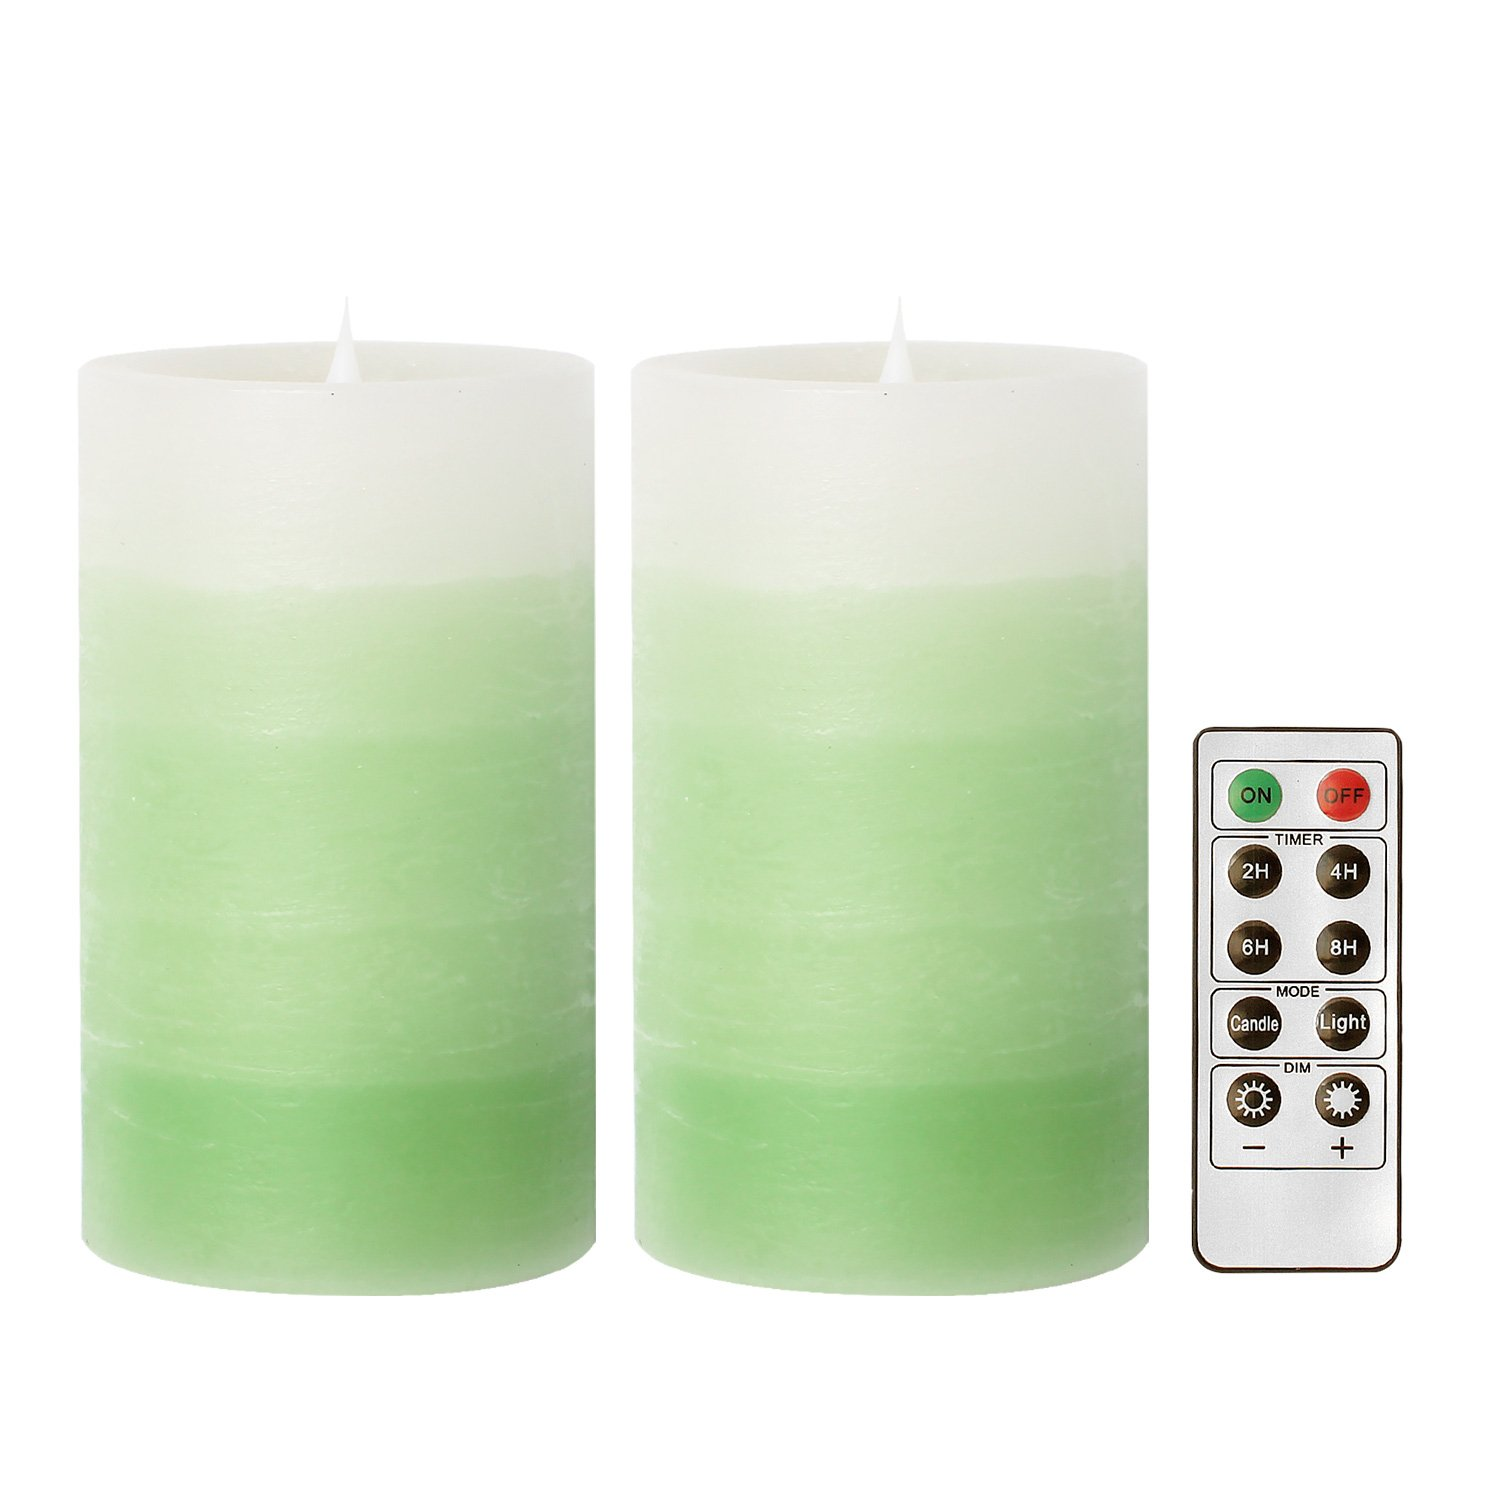 GiveU 3D Flame Led Candle with Remote, 2 Pack Moving Wick Candle for Home Decor, Weddings, and St.Patrick s Day Decoration, Battery Included